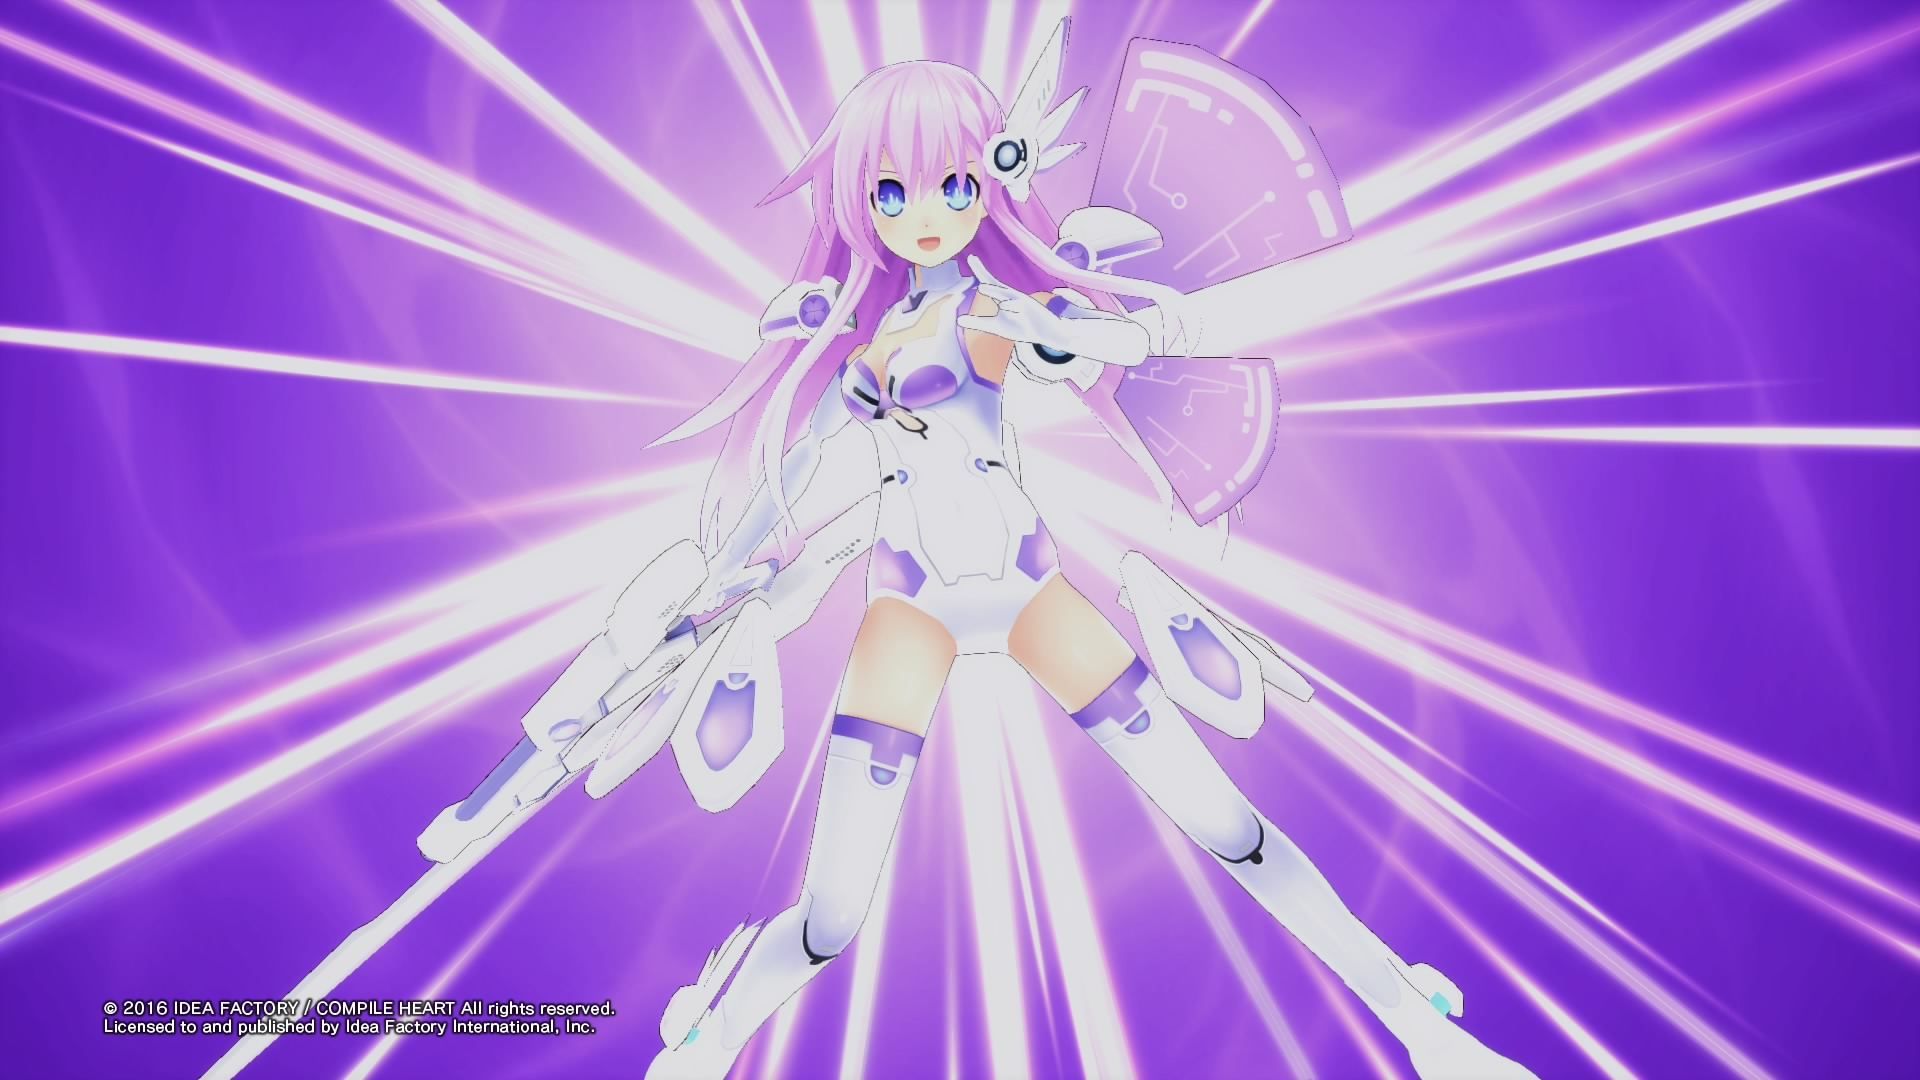 Megadimension Neptunia VIIR Trailer